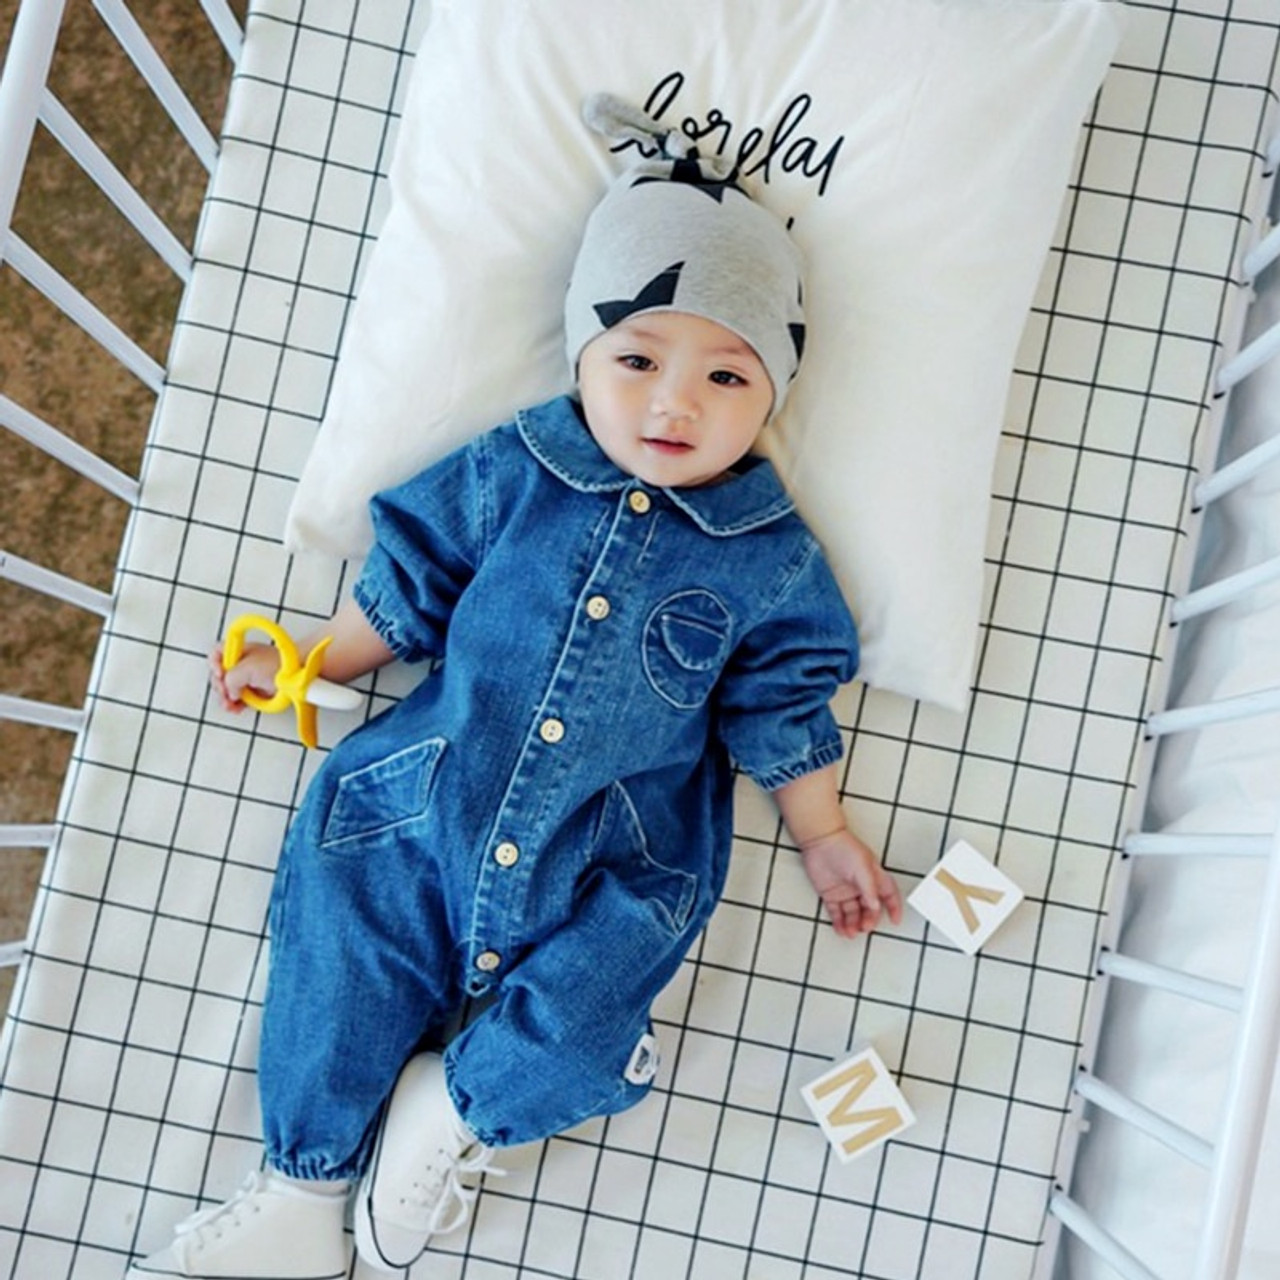 0e6a13205 ... Soft Denim Baby Romper Graffiti Infant Clothes Newborn Jumpsuit Babies  Boy Girls Costume Cowboy Fashion Jeans ...